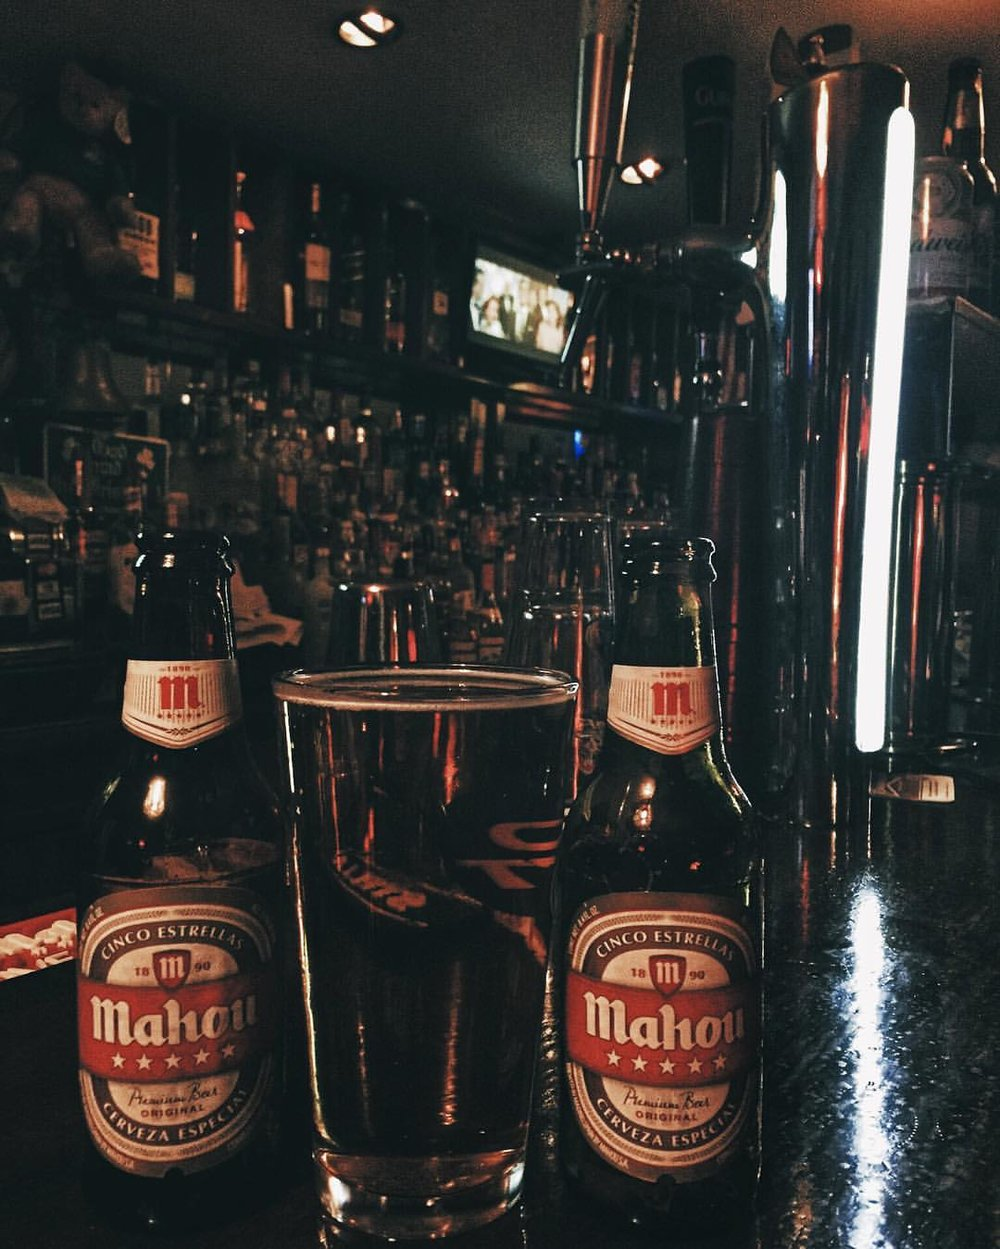 Friday night Mahou at the Shannon Pot in Long Island City